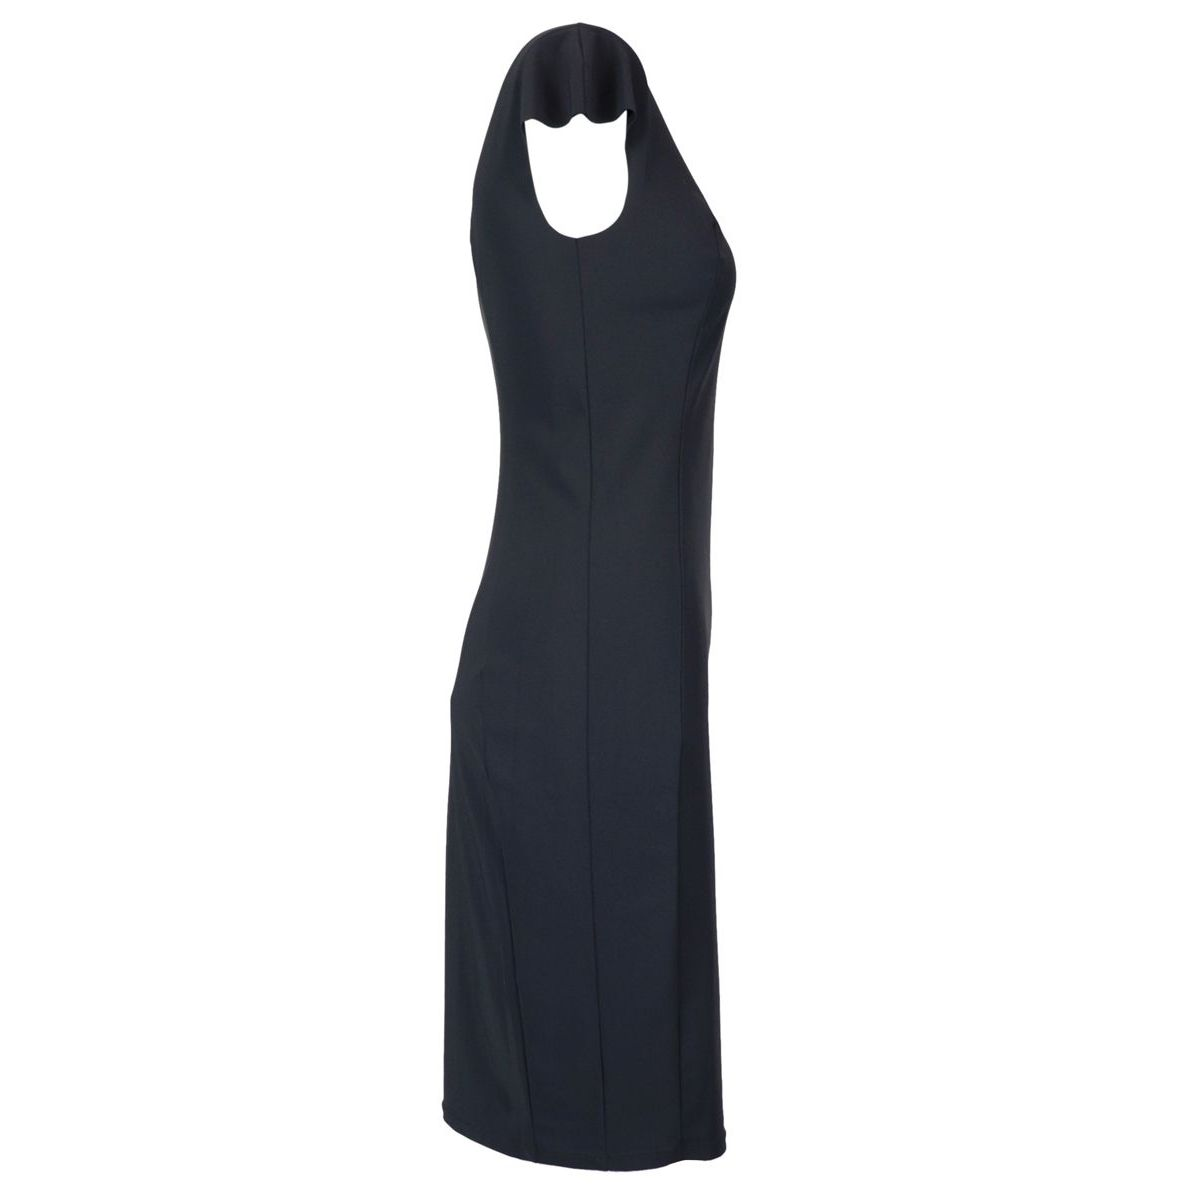 Sleeveless sheath dress in technical fabric Black Patrizia Pepe